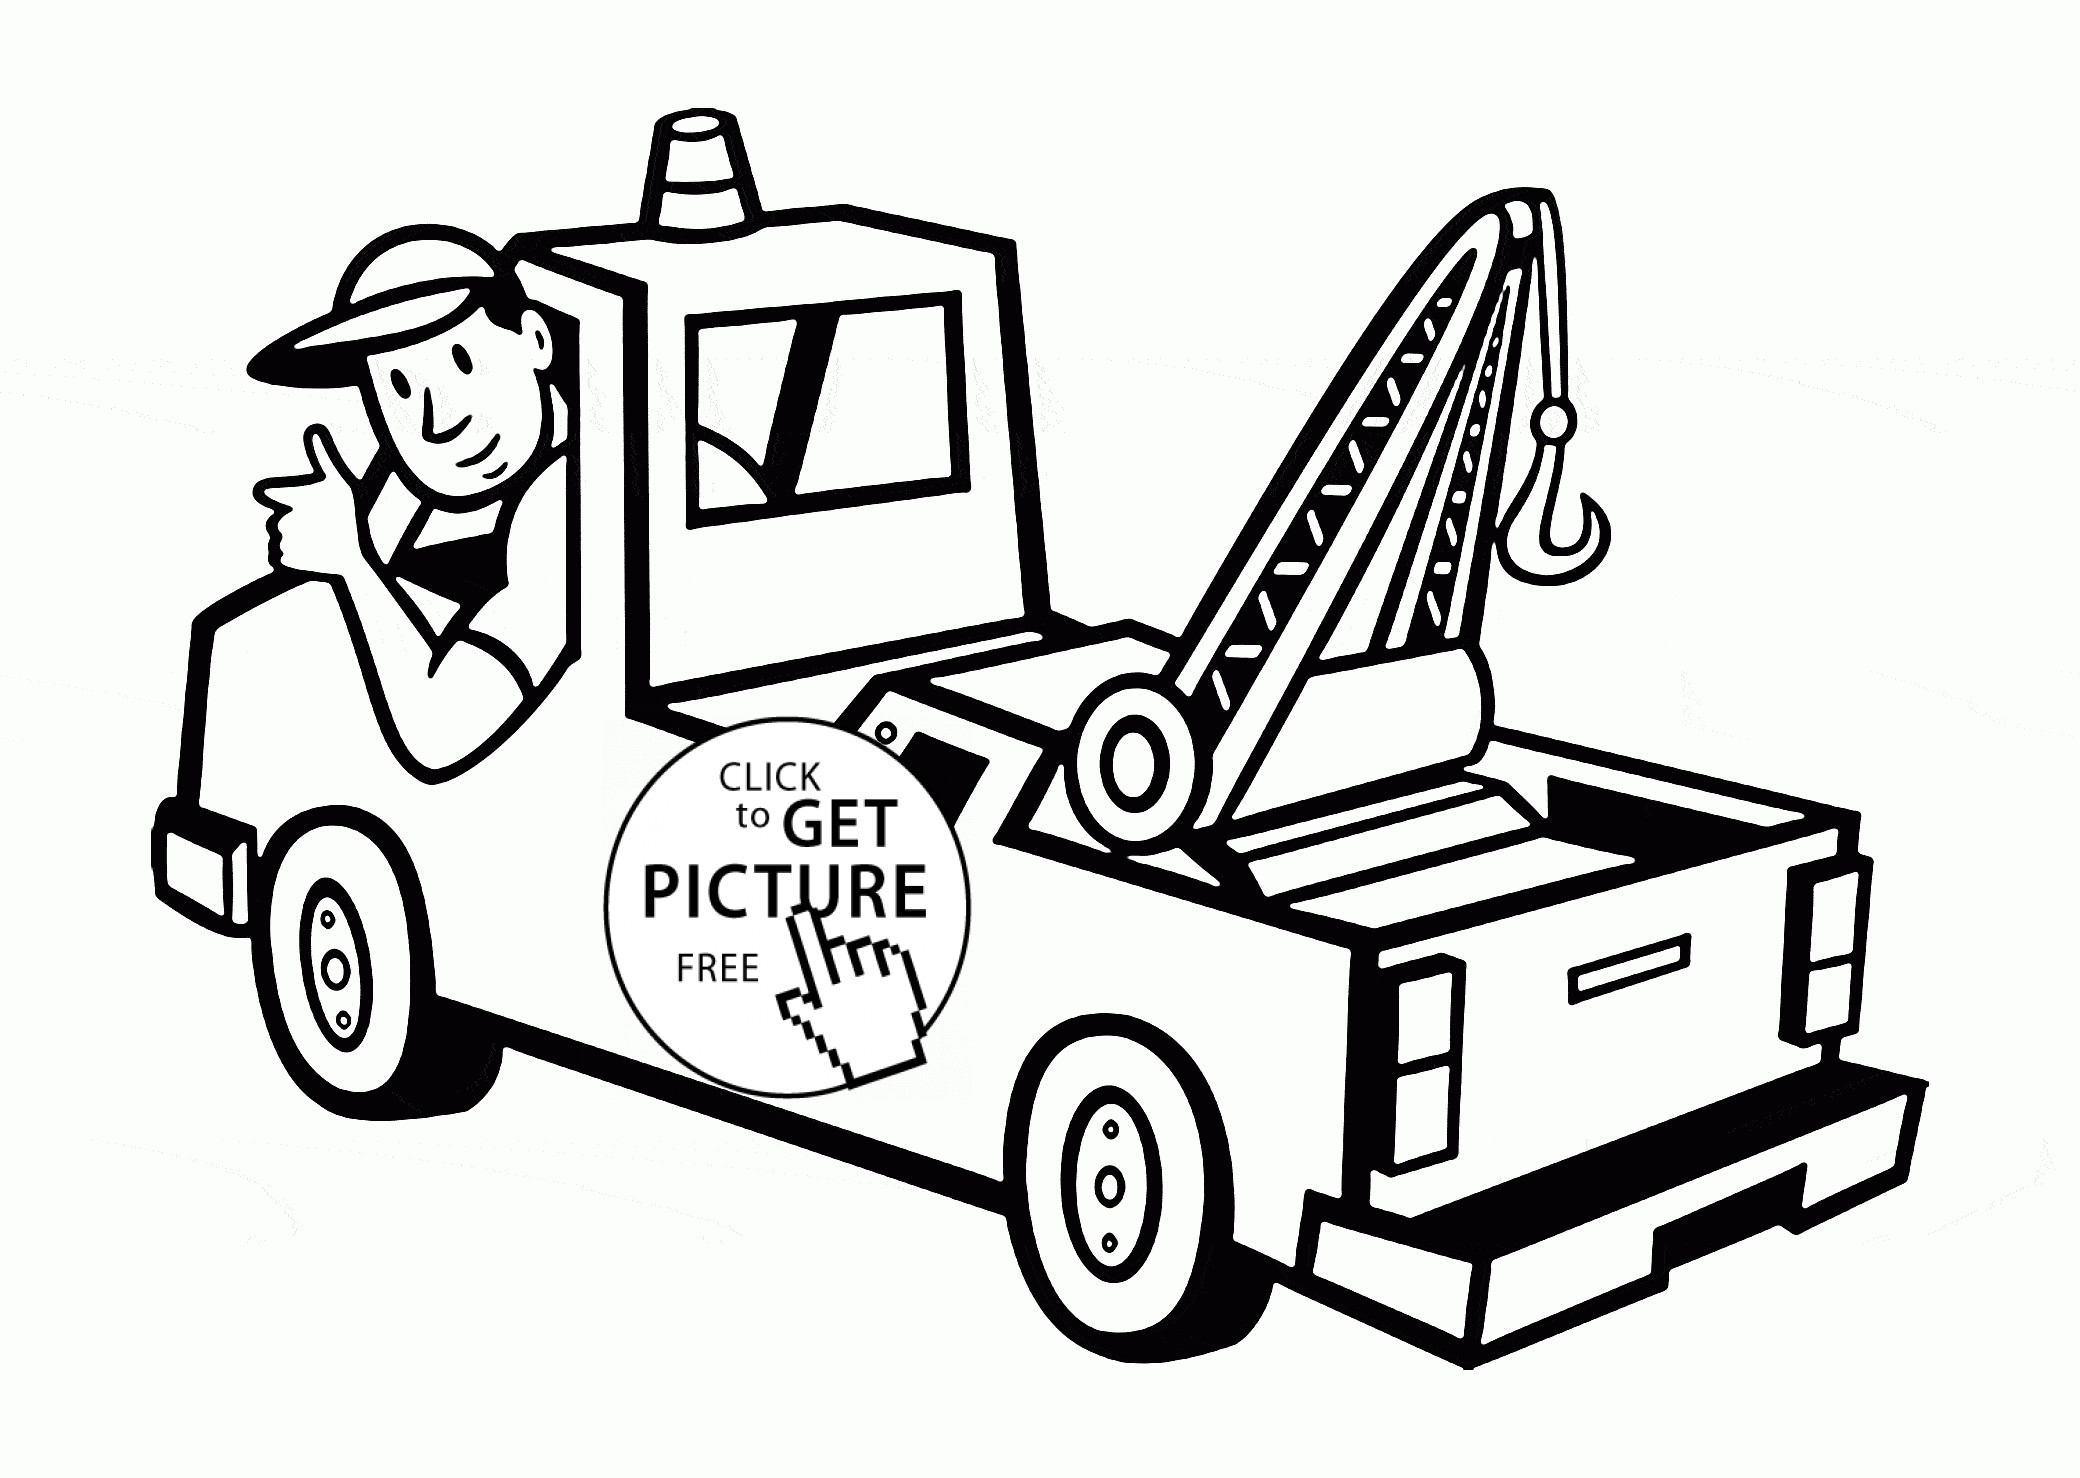 18 Wheeler Truck Coloring Pages At Getcolorings